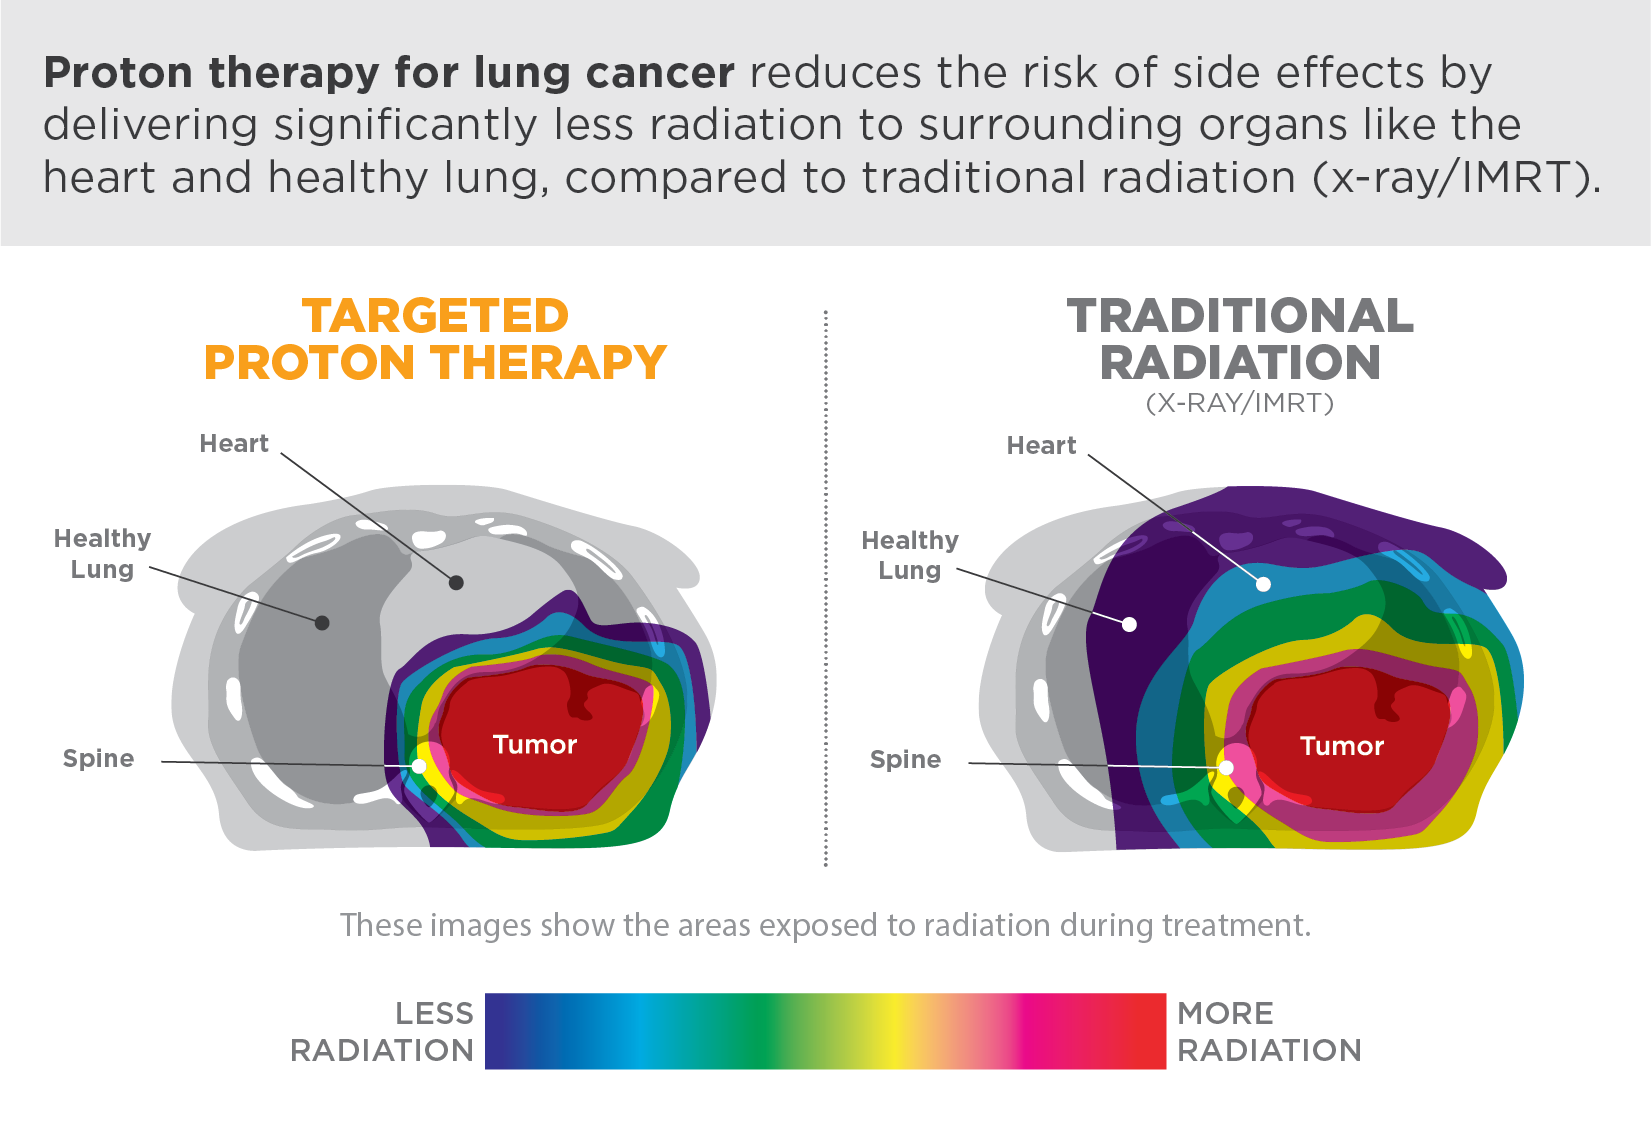 Proton therapy for lung cancer reduces the risk of side effects by delivering significantly less radiation to surrounding organs like the heart and healthy lung, compared to traditional radiation (x-ray/IMRT).